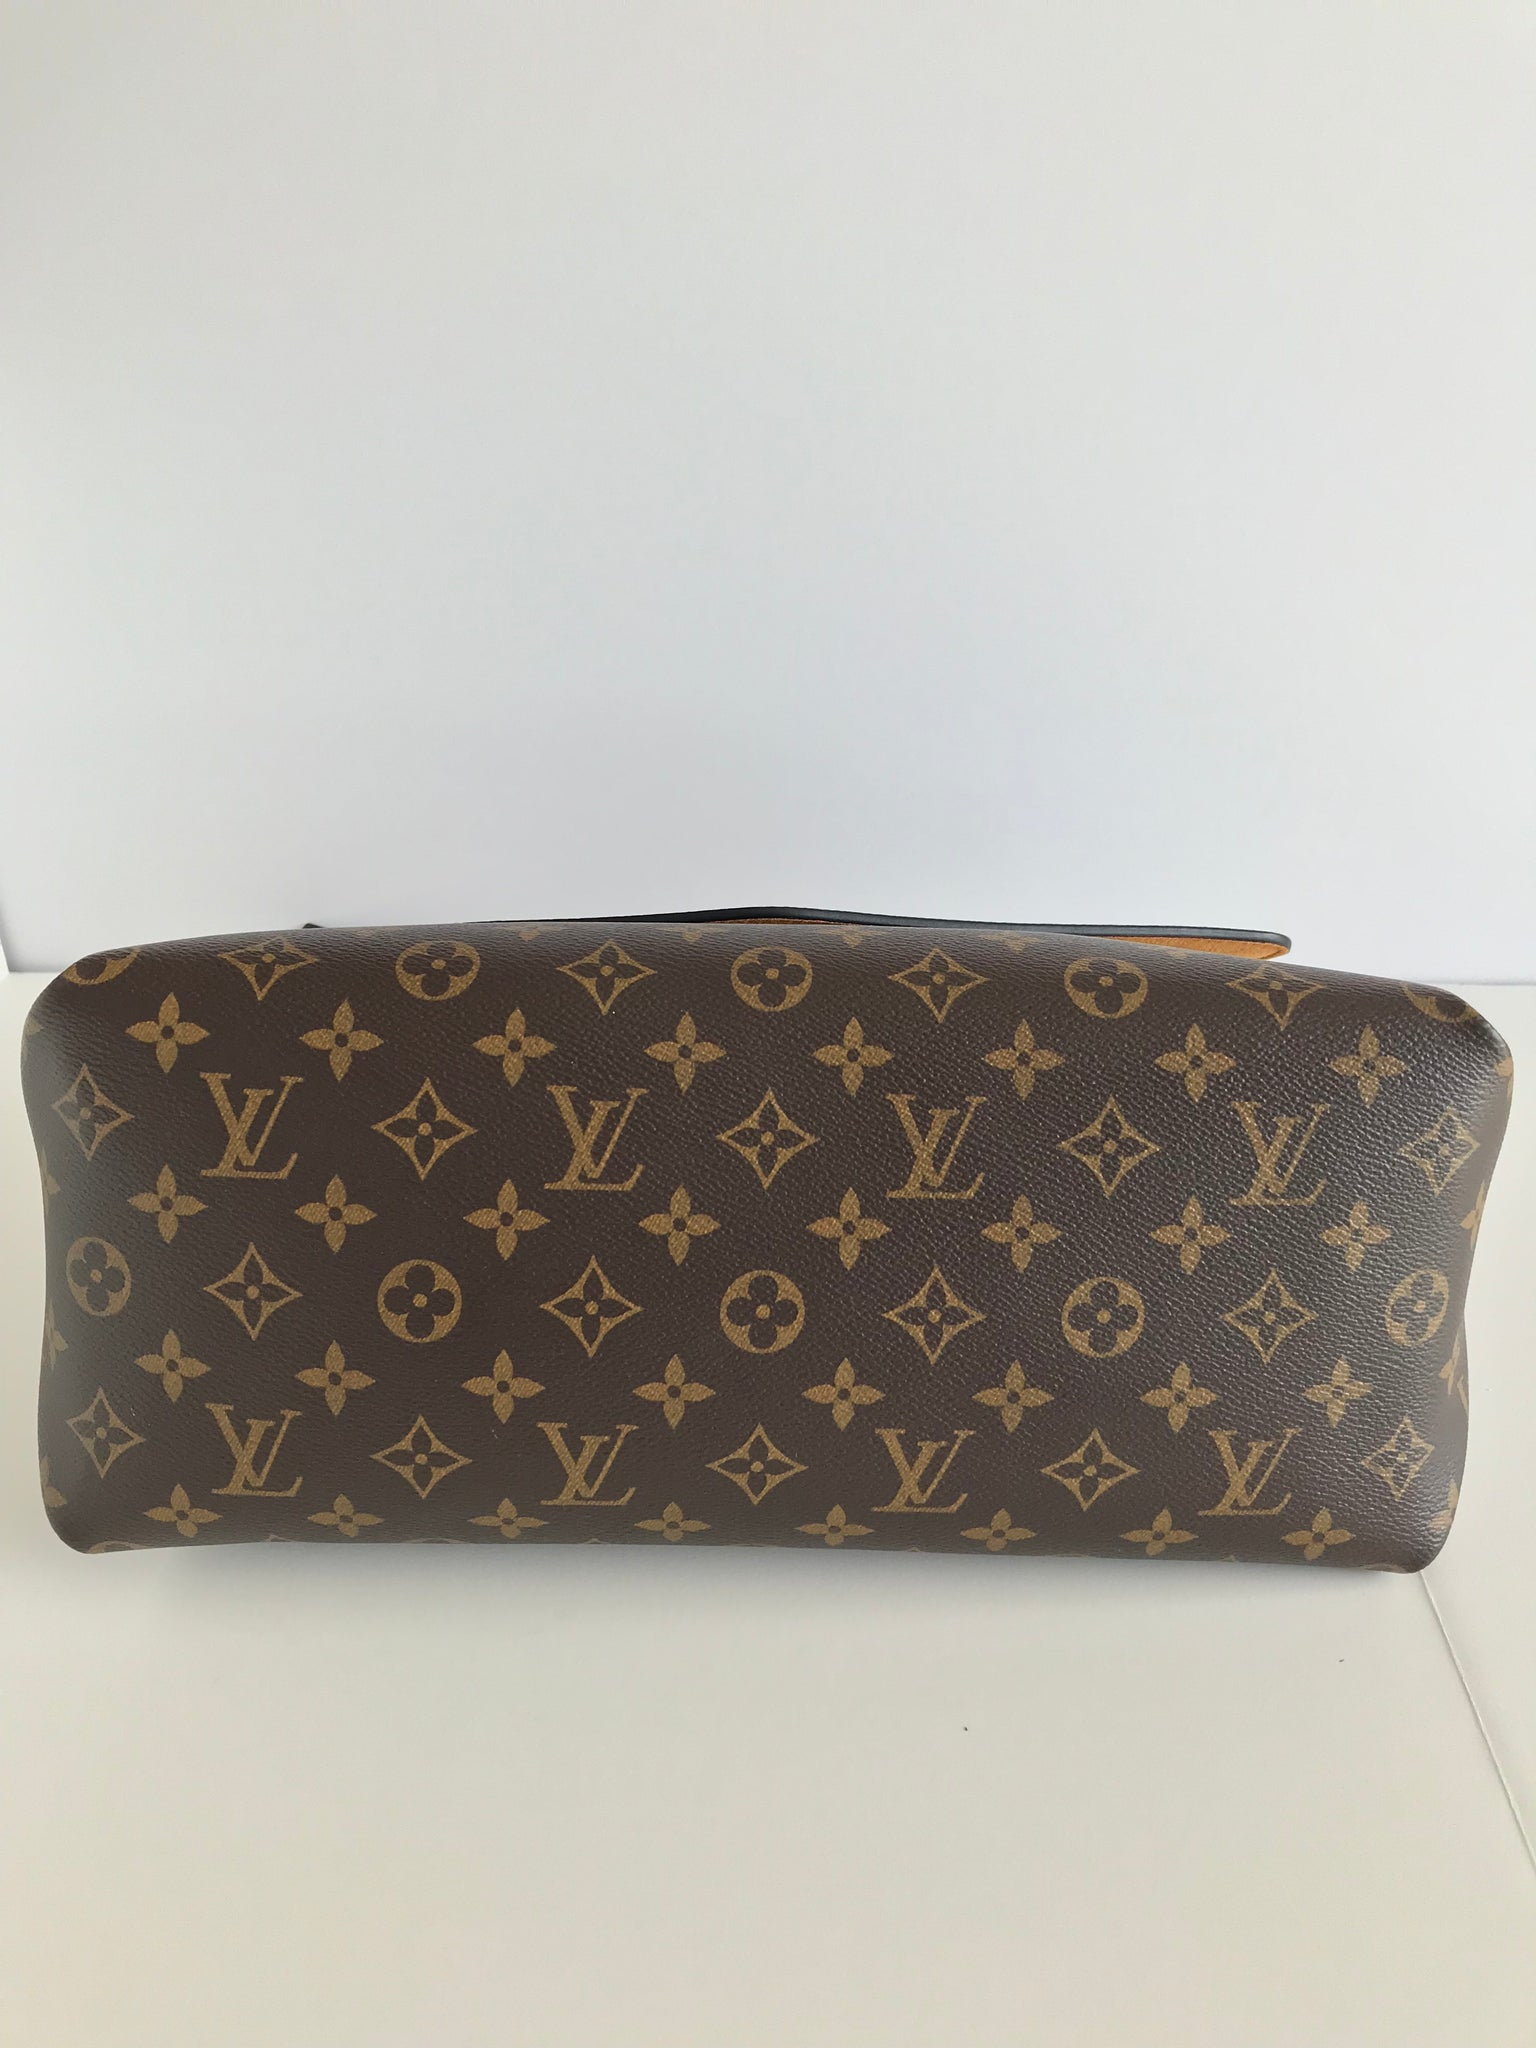 8daf9dae2e0 ... Load image into Gallery viewer, LOUIS VUITTON Beaubourg Mm Monogram  Canvas ...